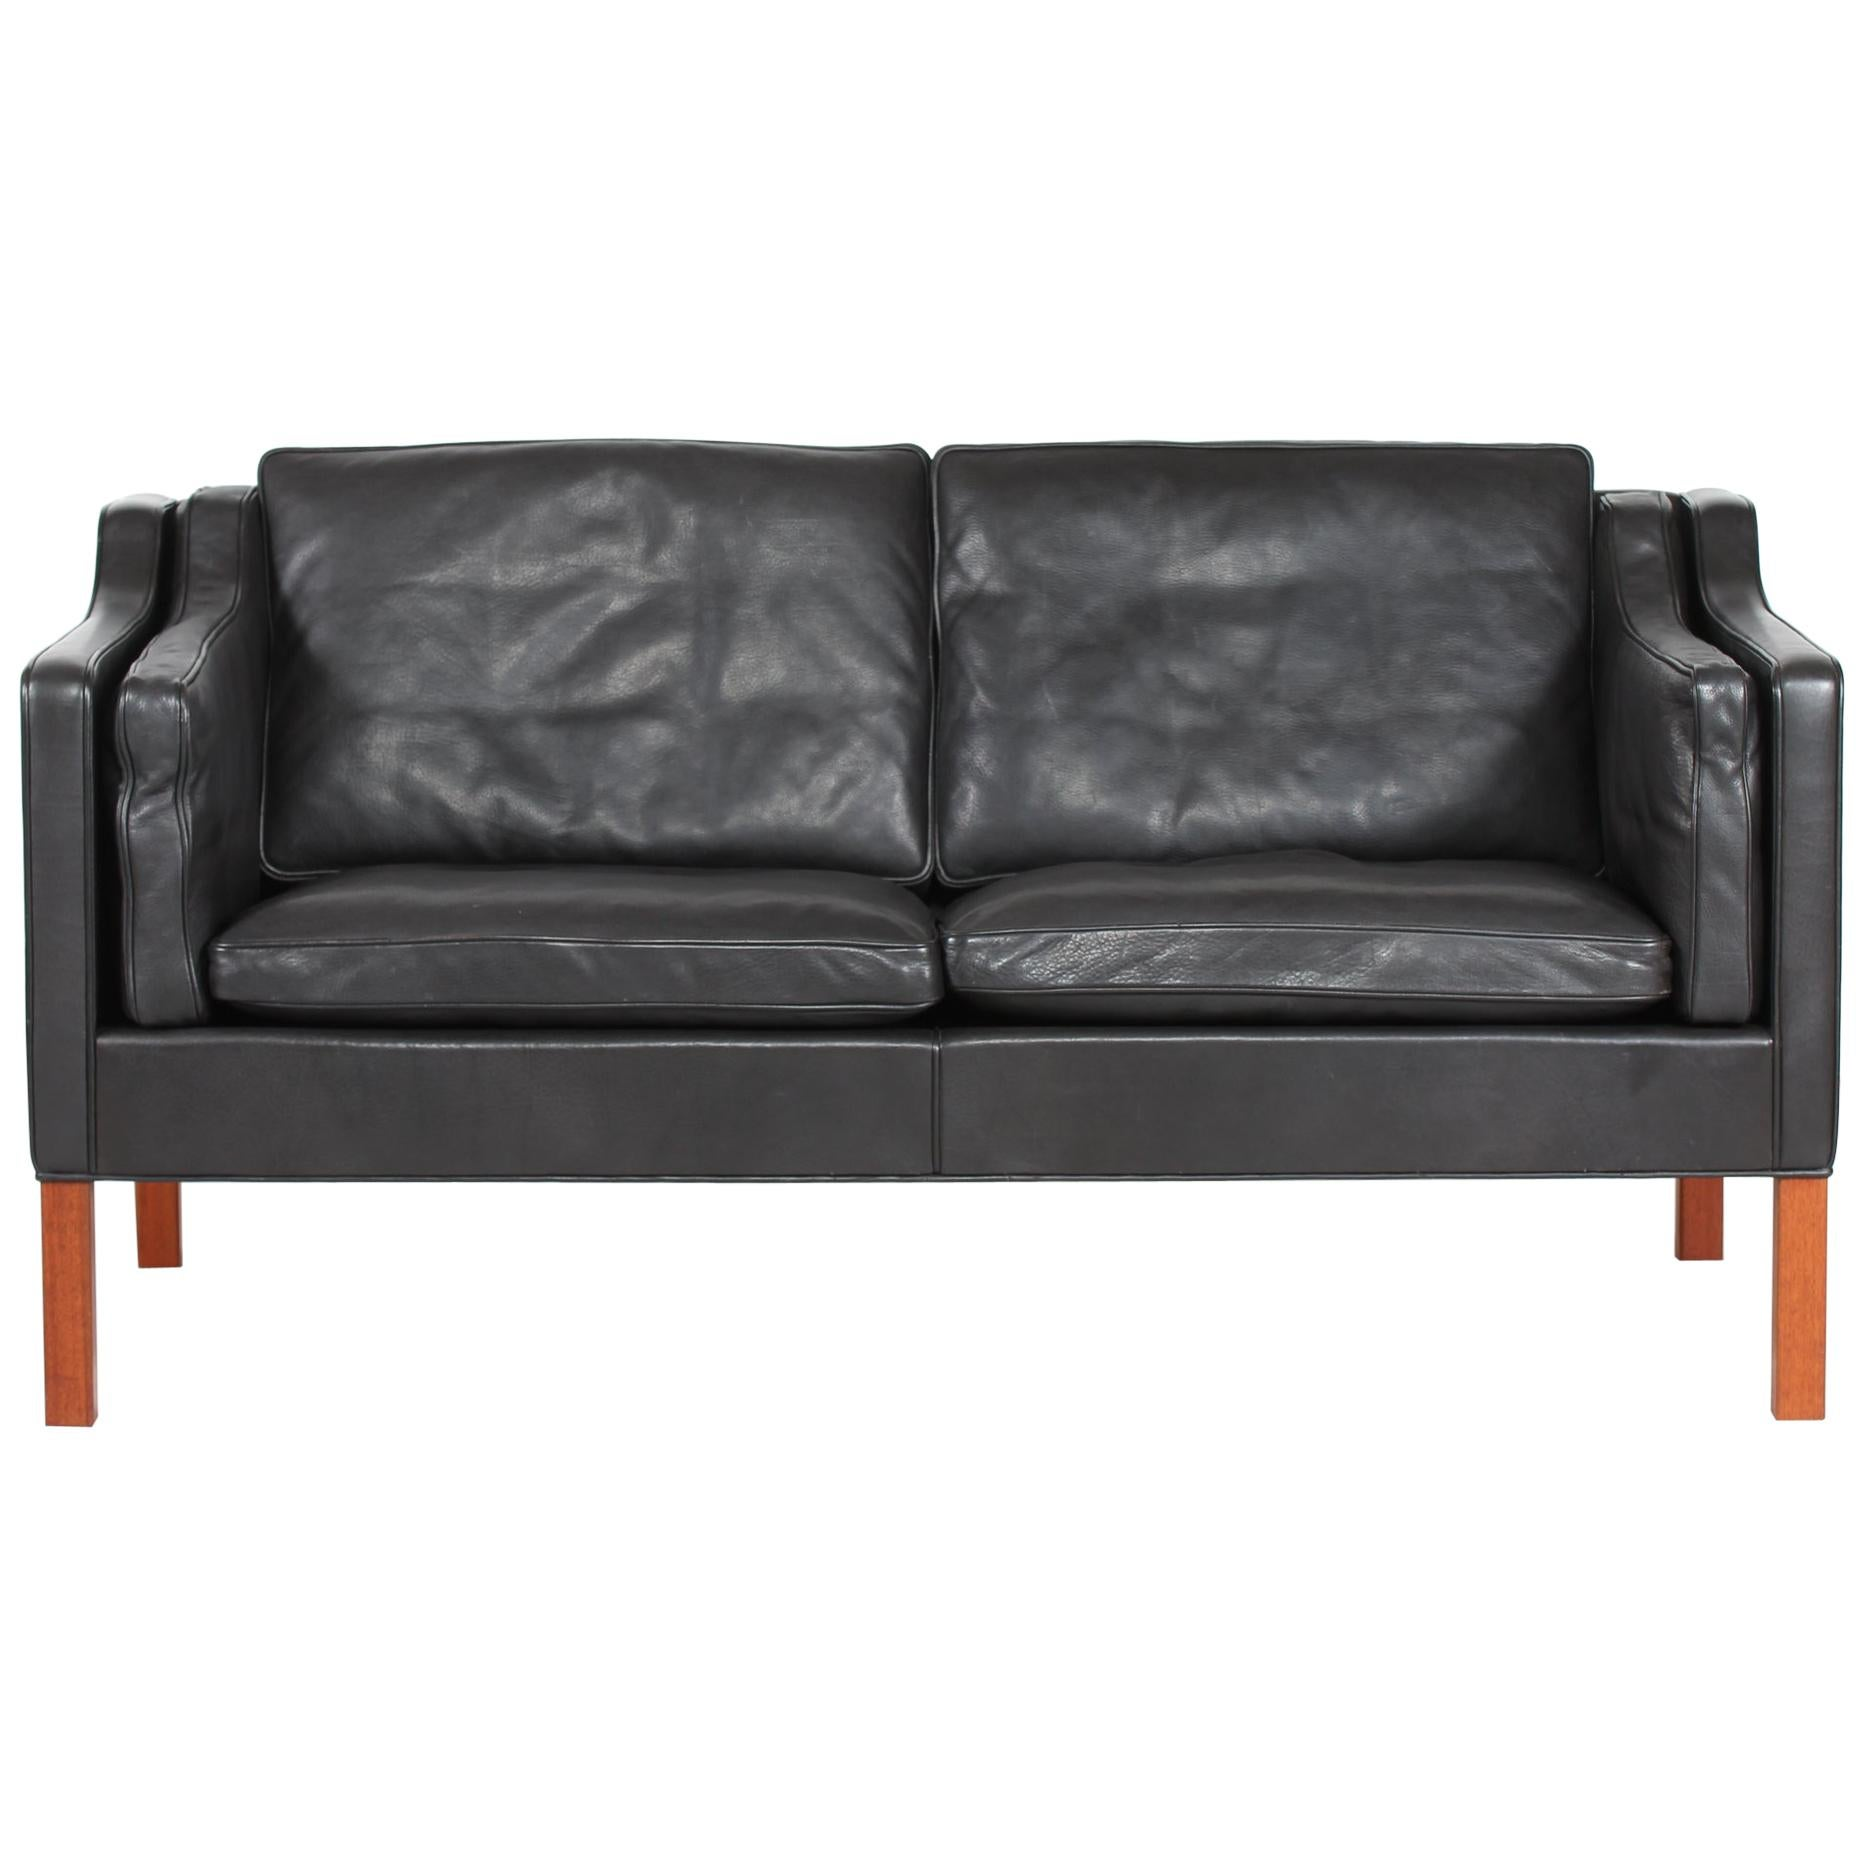 Børge Mogensen Sofa 2212 with Black Leather by Fredericia Stolefabrik, 1981